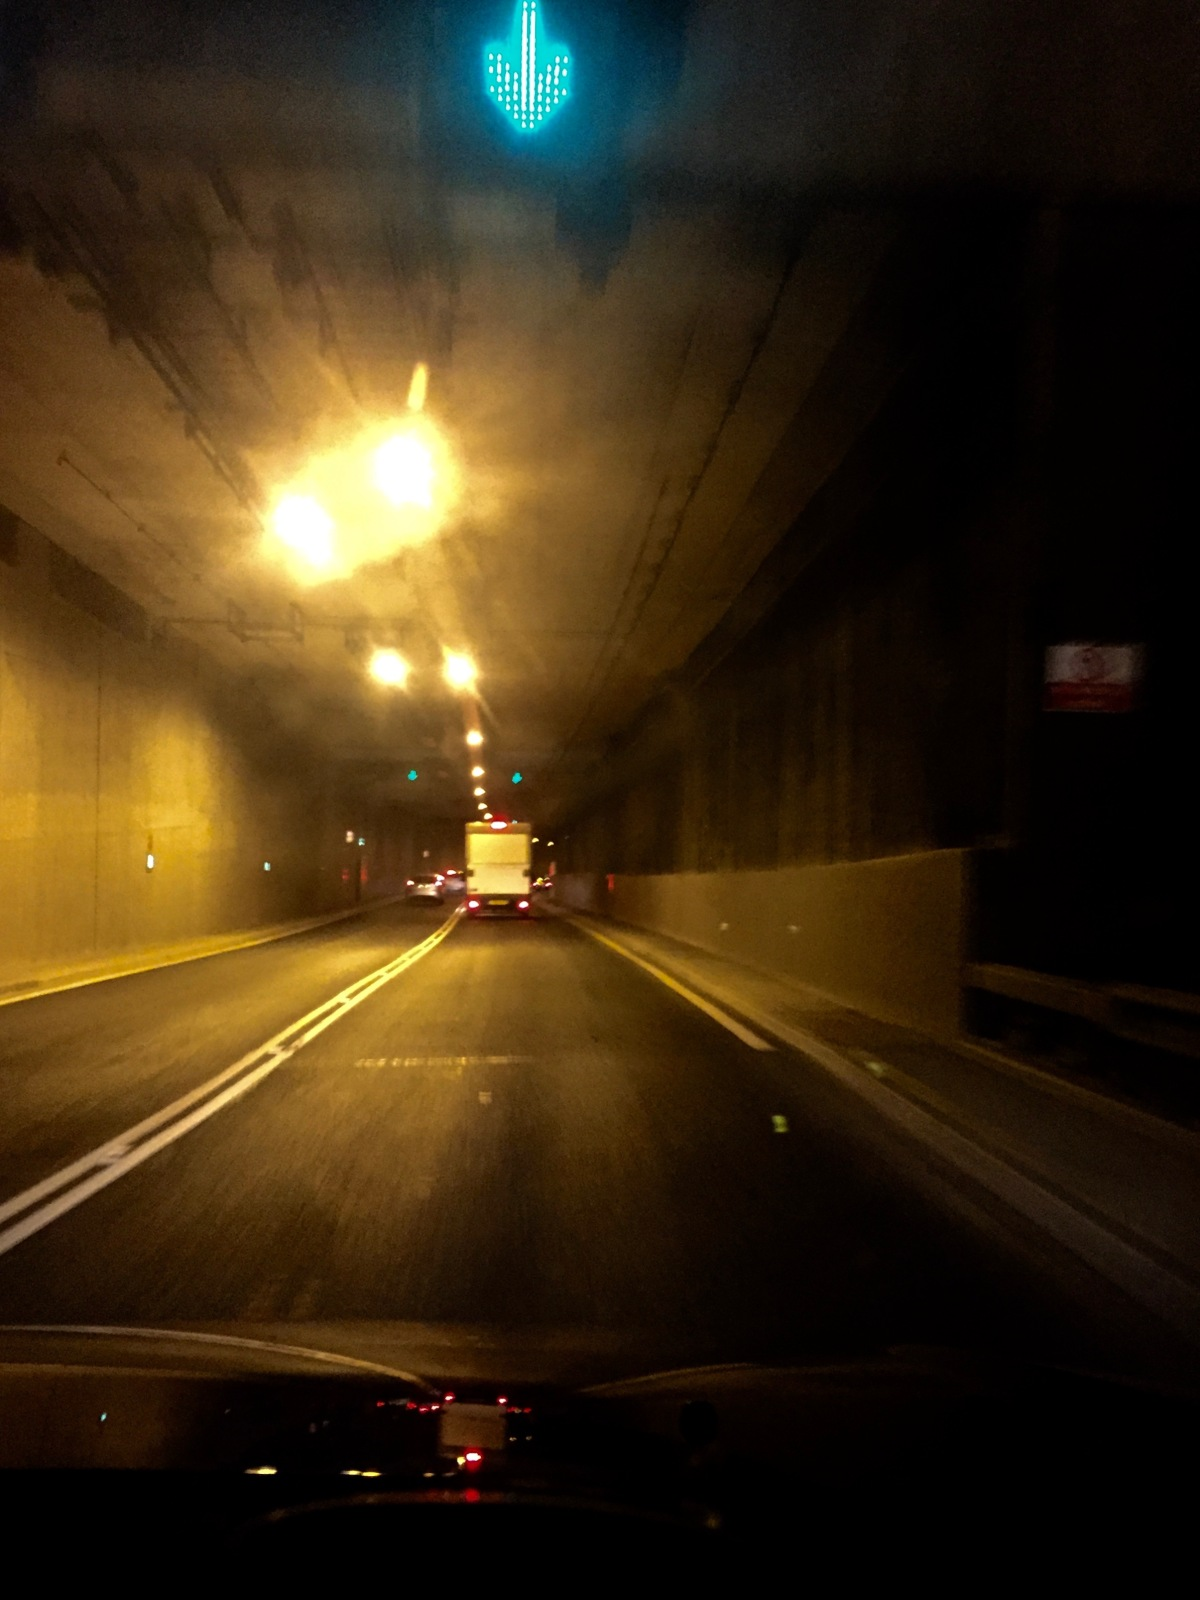 Through the Tyne Tunnel